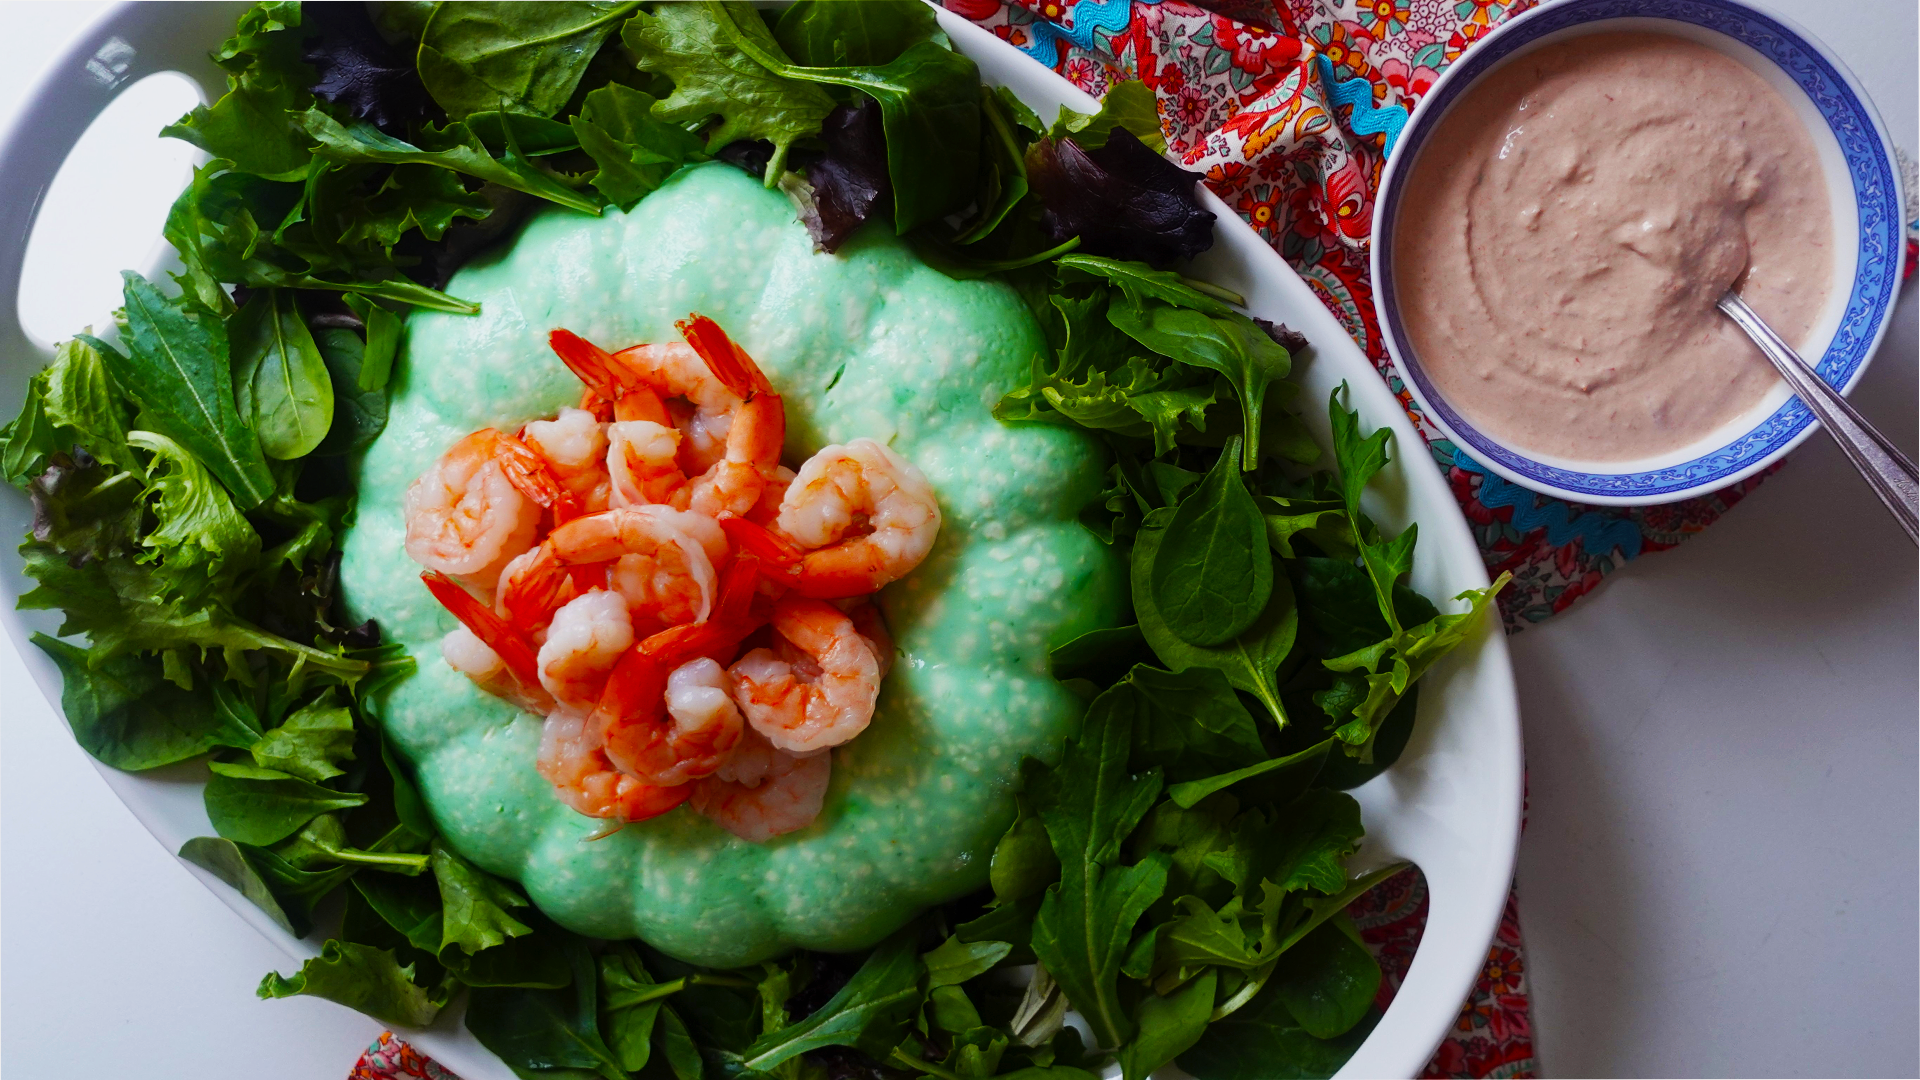 Lime Cottage Cheese Jello Salad with Sour Cream Chili Sauce Dressing